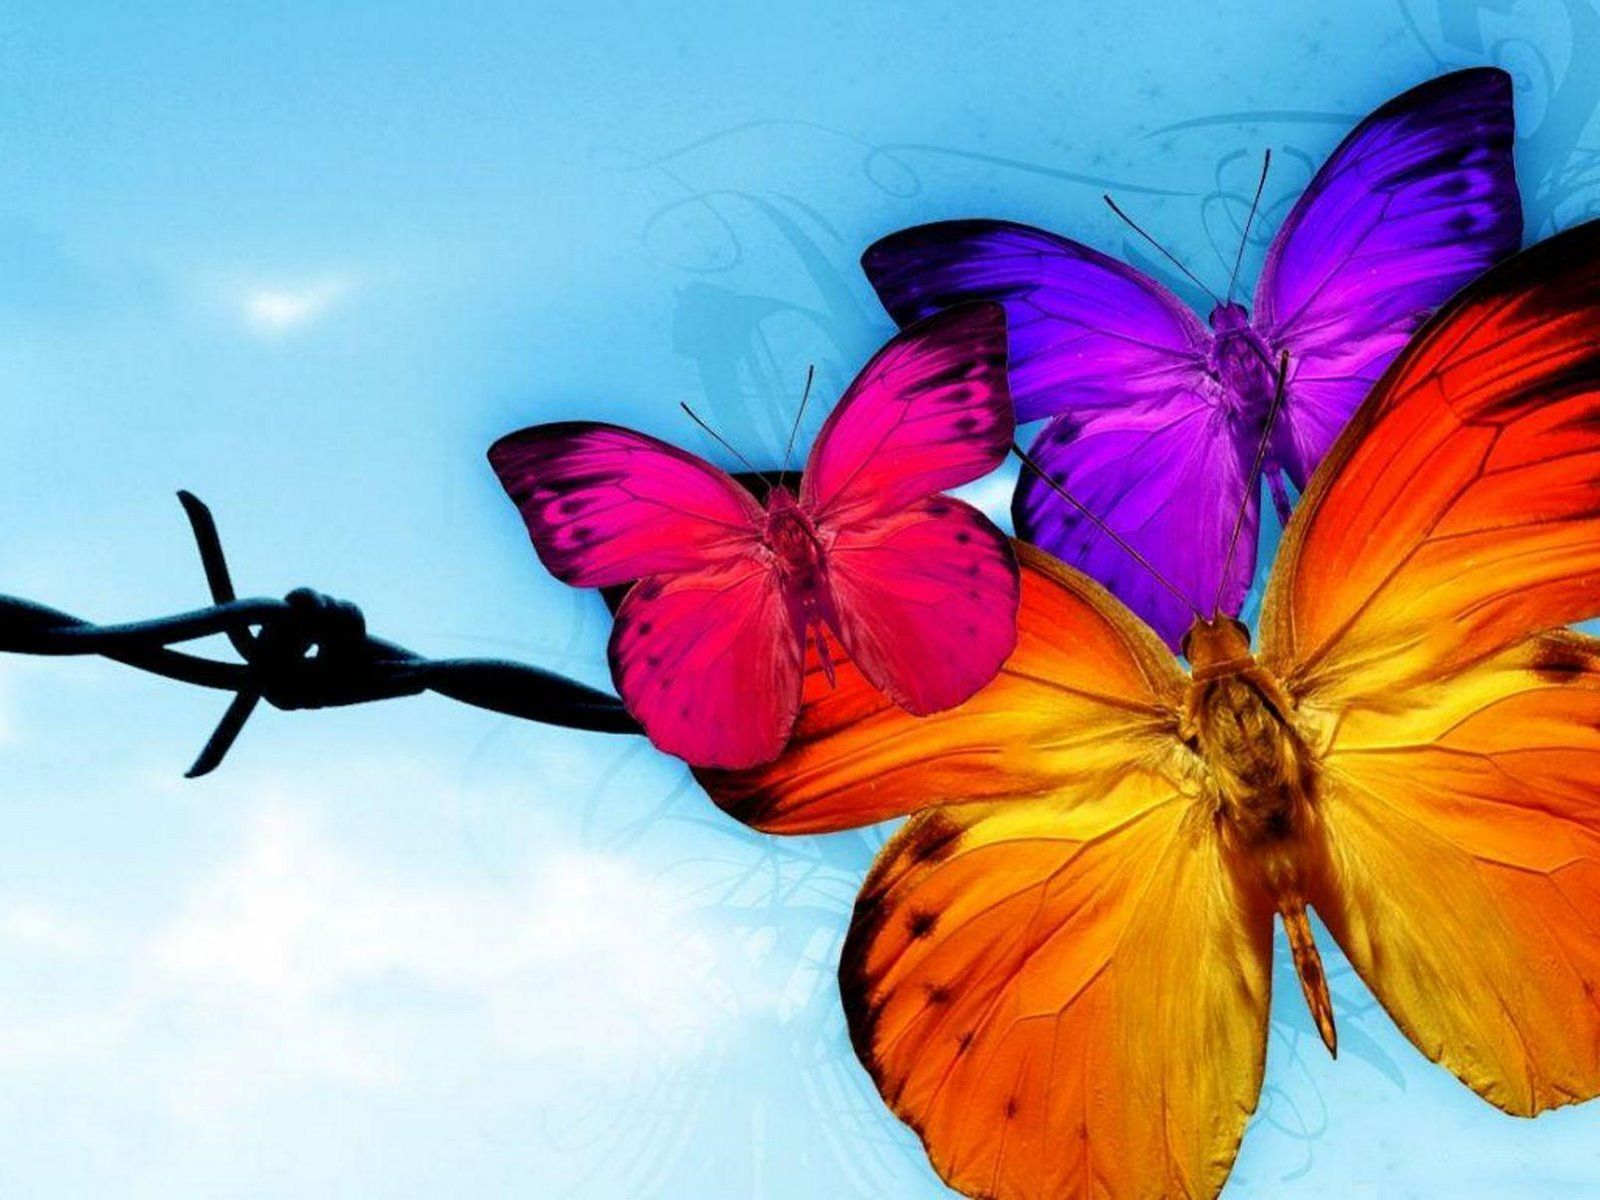 Free butterfly wallpaper, Cute butterfly wallpaper, Colorful ... for Colorful Butterfly Wallpapers  28cpg